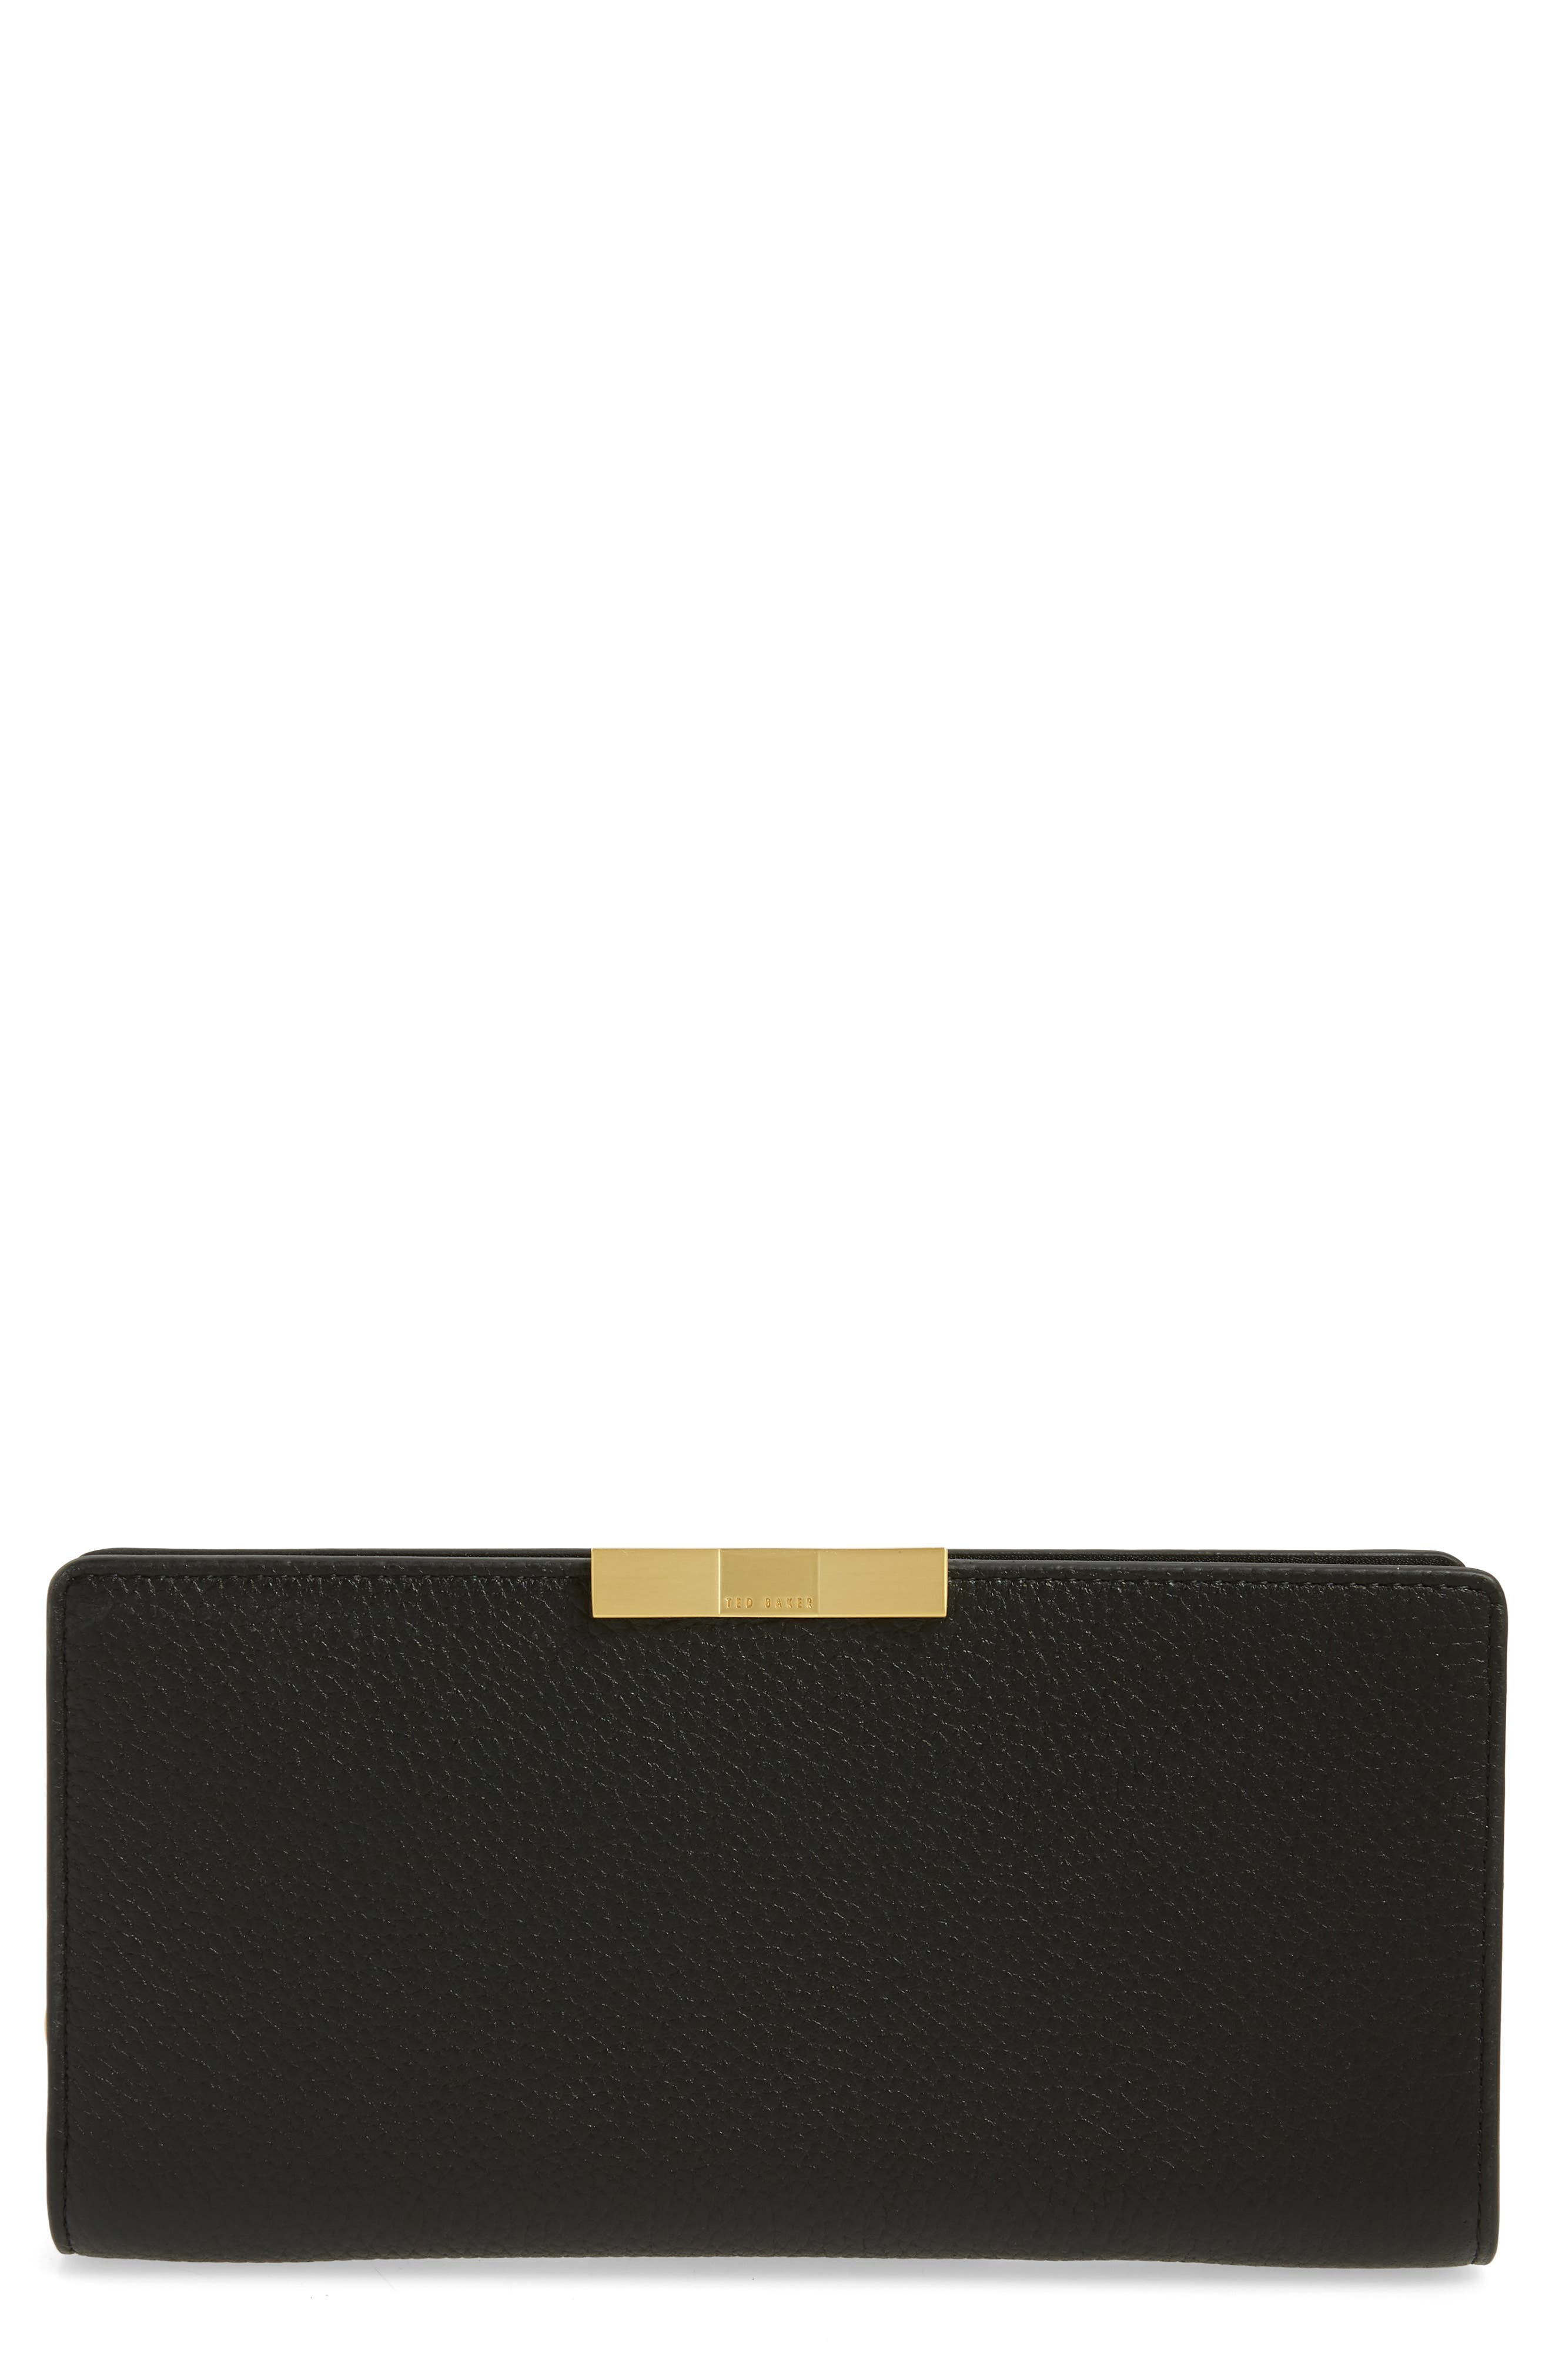 TED BAKER LONDON, Emblyn Leather Matinée Wallet, Main thumbnail 1, color, 001